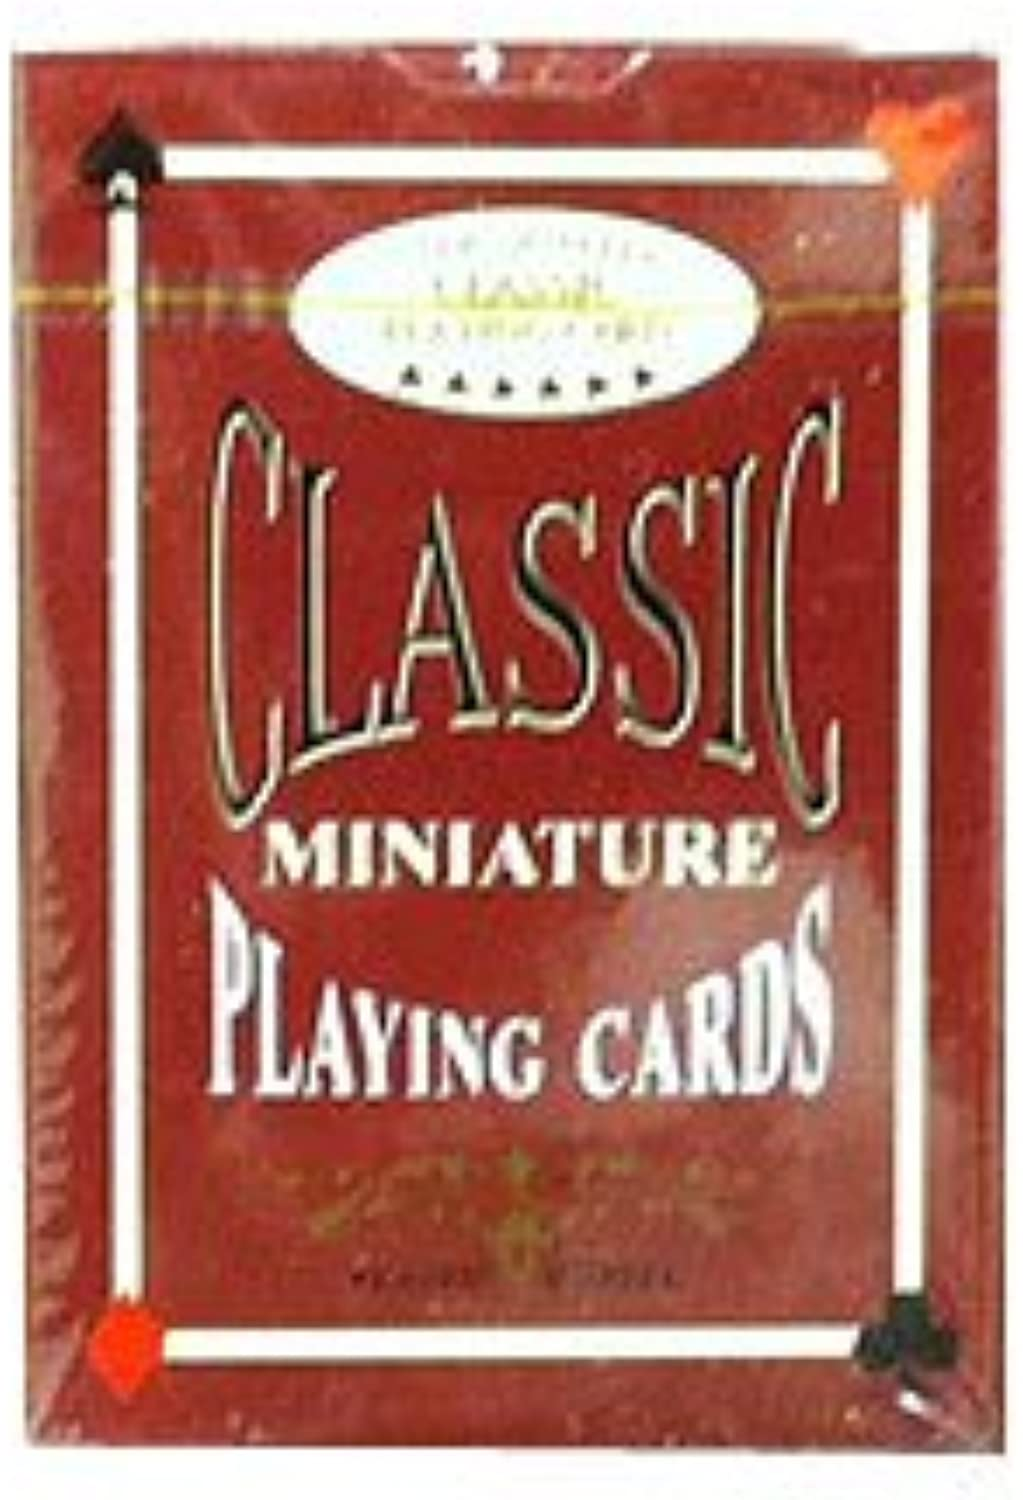 Classic Miniature Playing Cards - Set of 10 by John Hansen